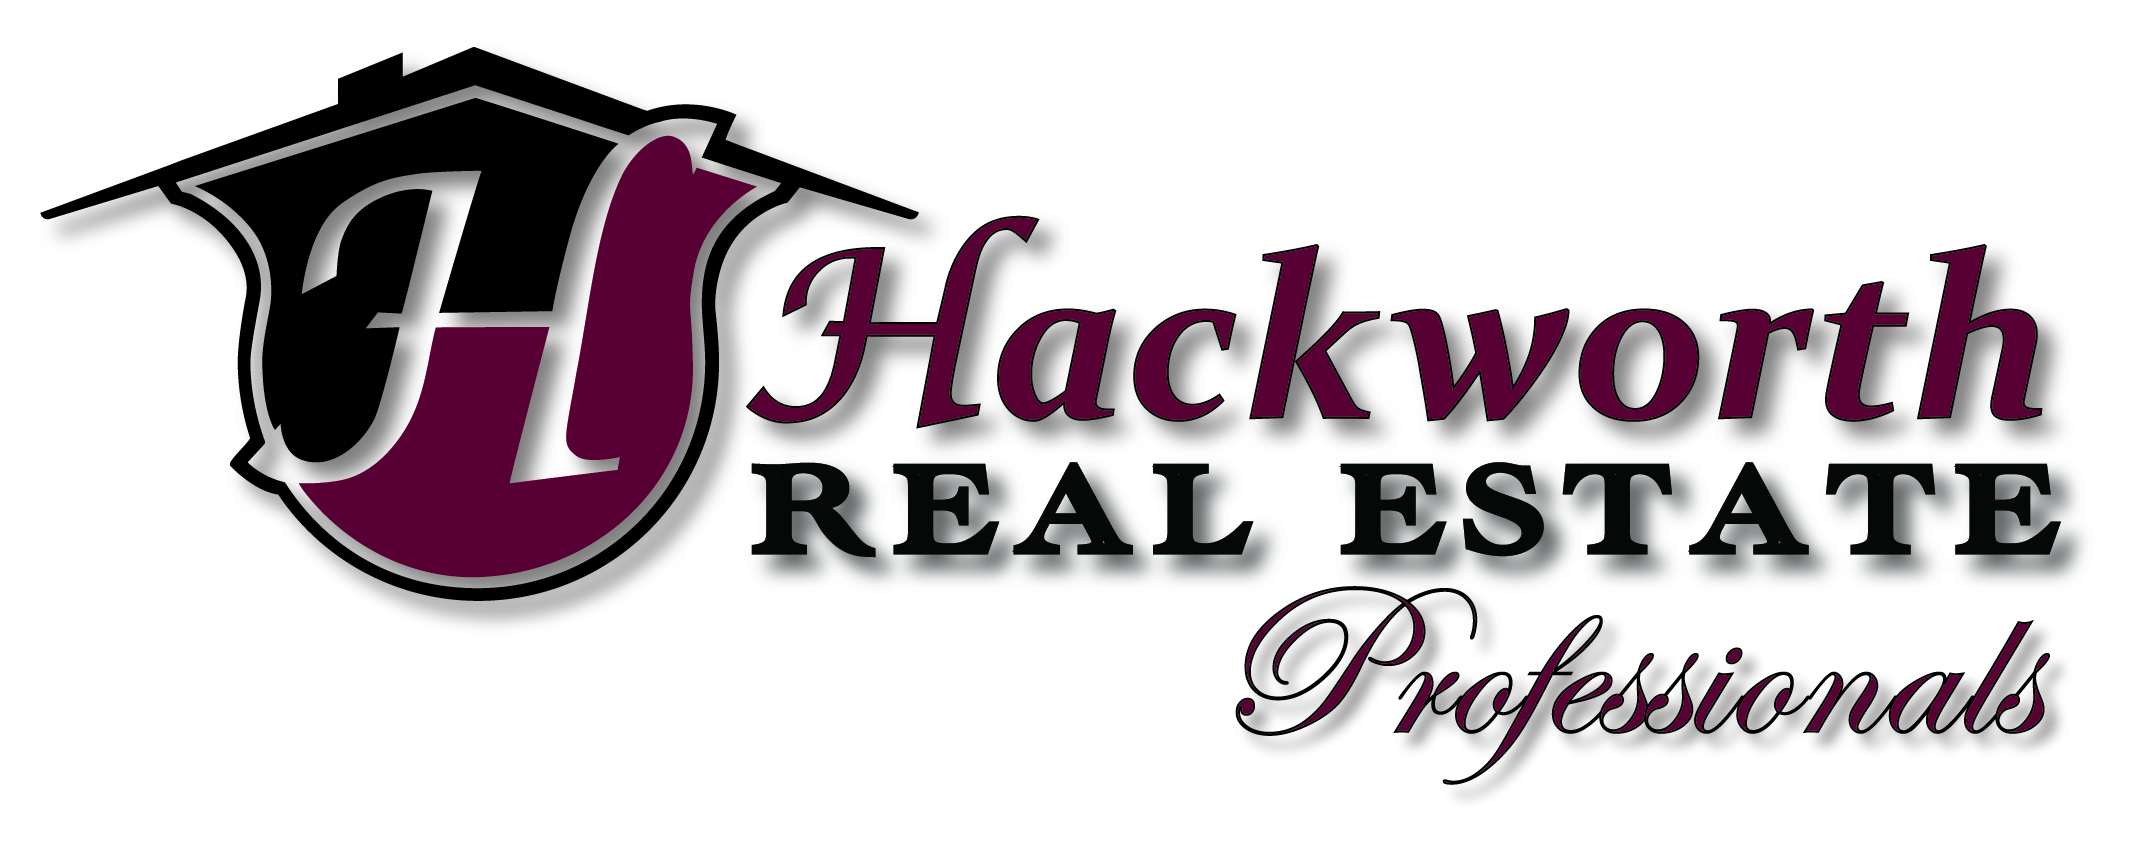 Hackworth Real Estate Professionals